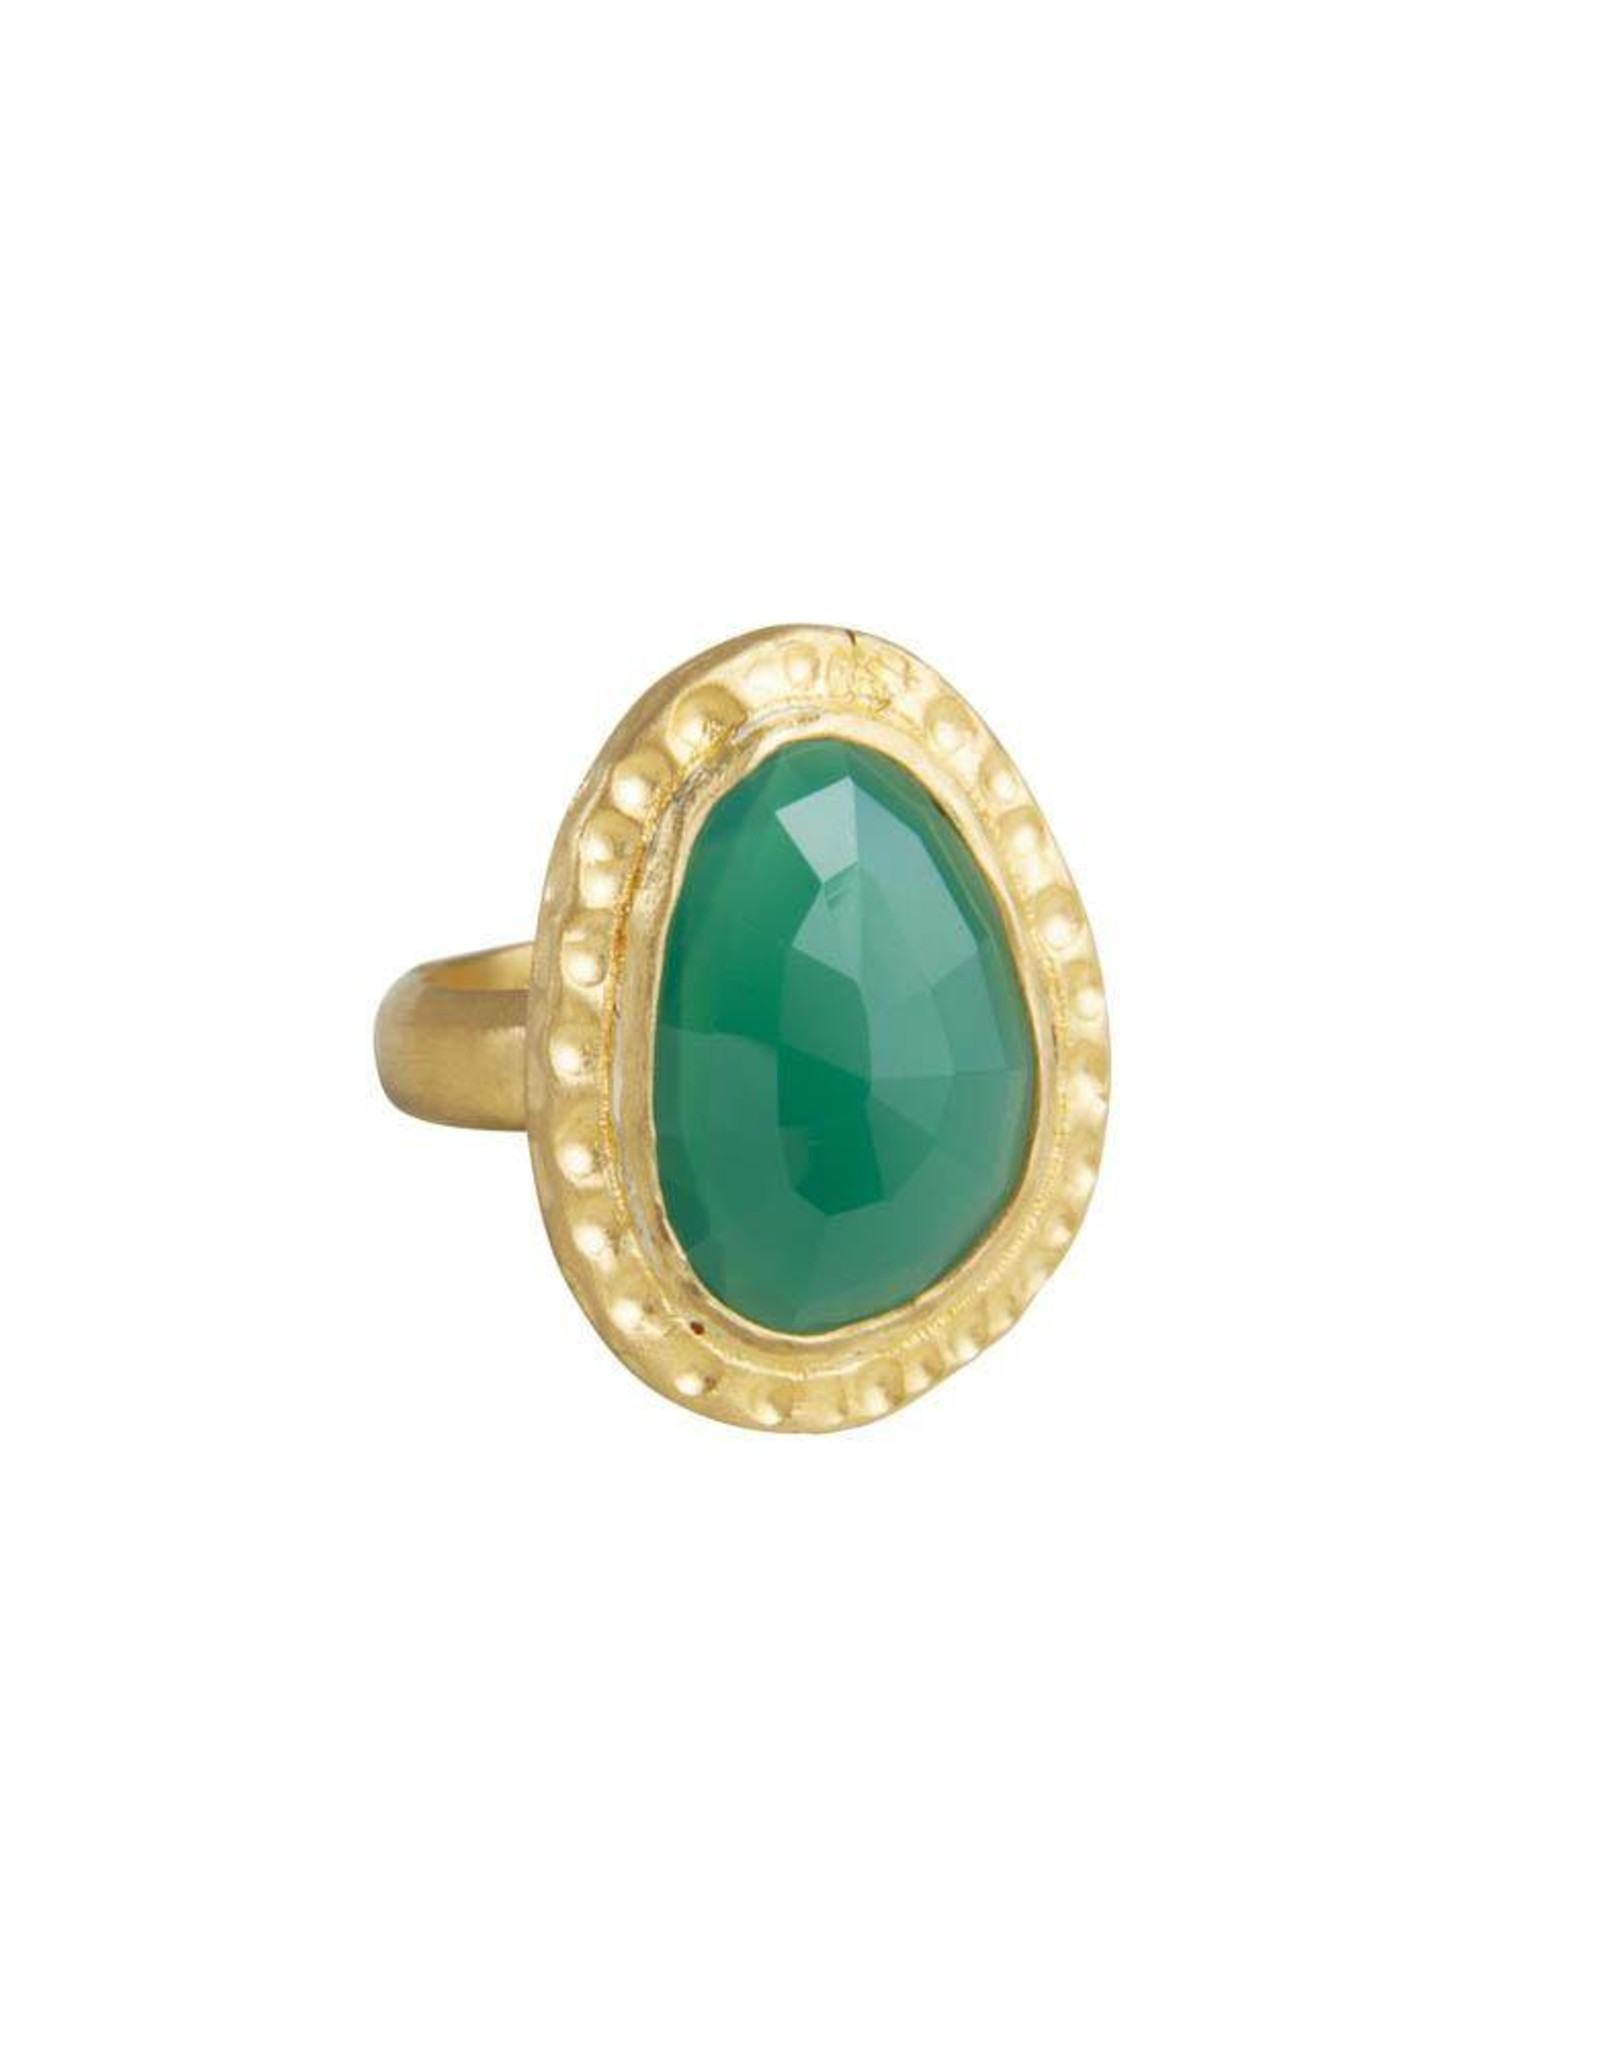 FAIRLEY GREEN AGATE COCKTAIL RING GOLD